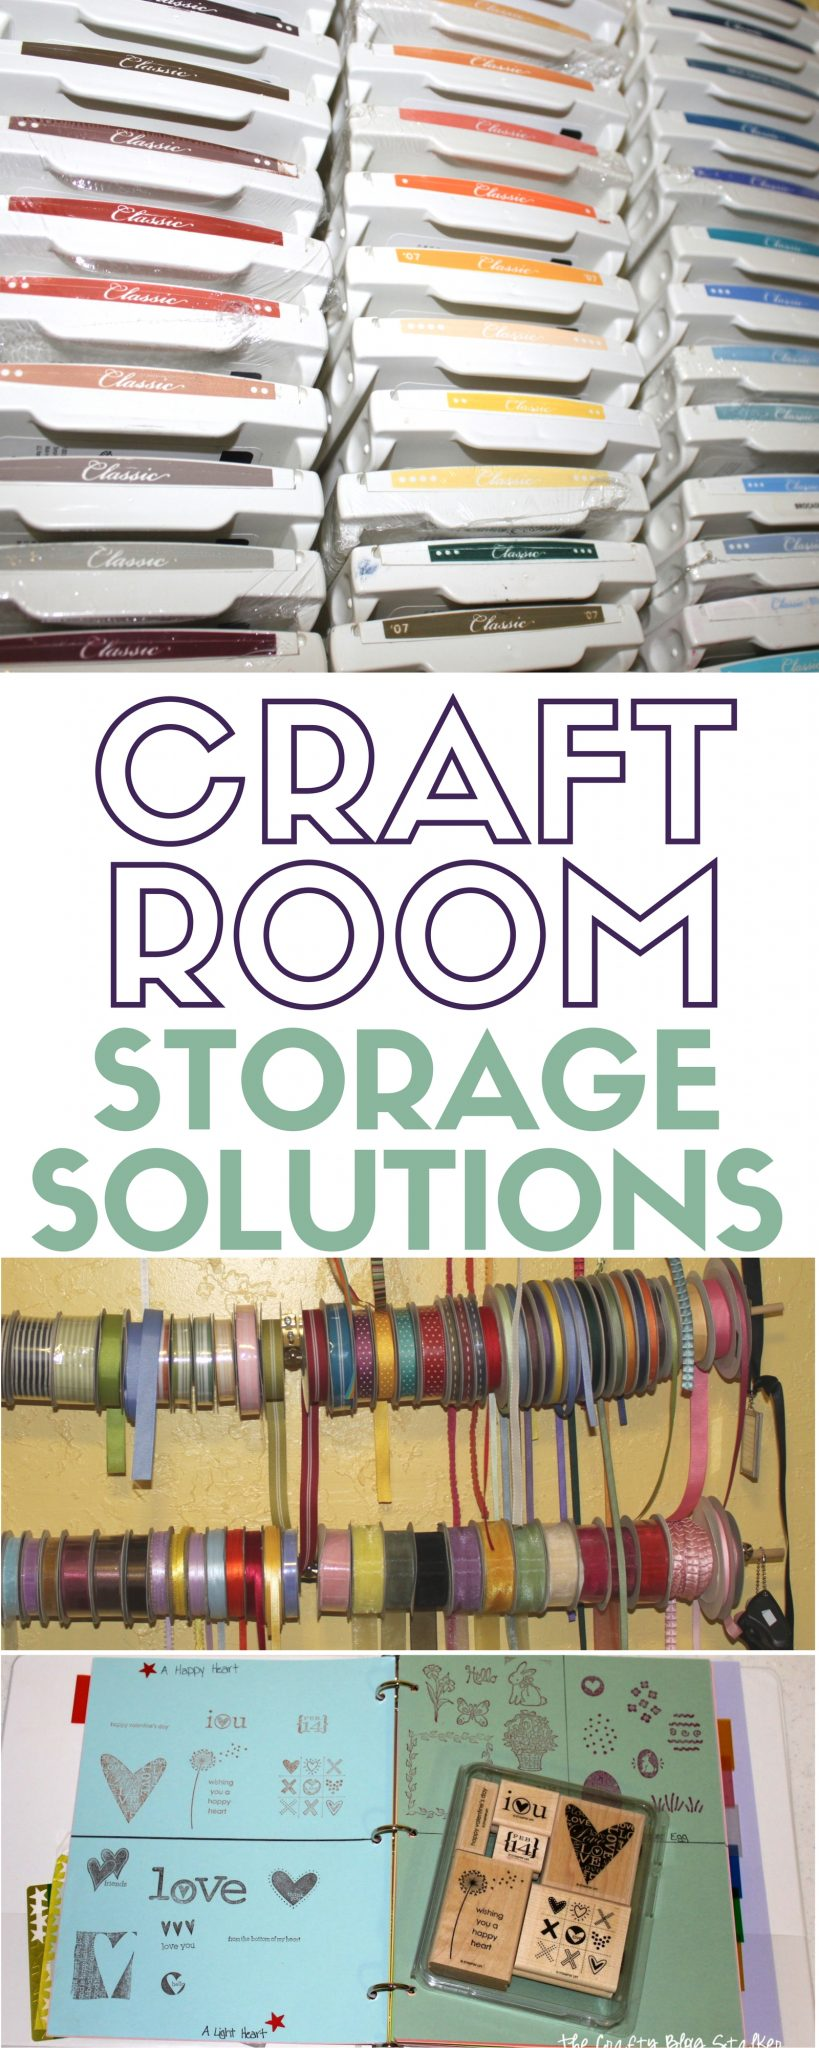 Storage Solutions | Craft Room | Organization Ideas | Clean and Tidy | Organized